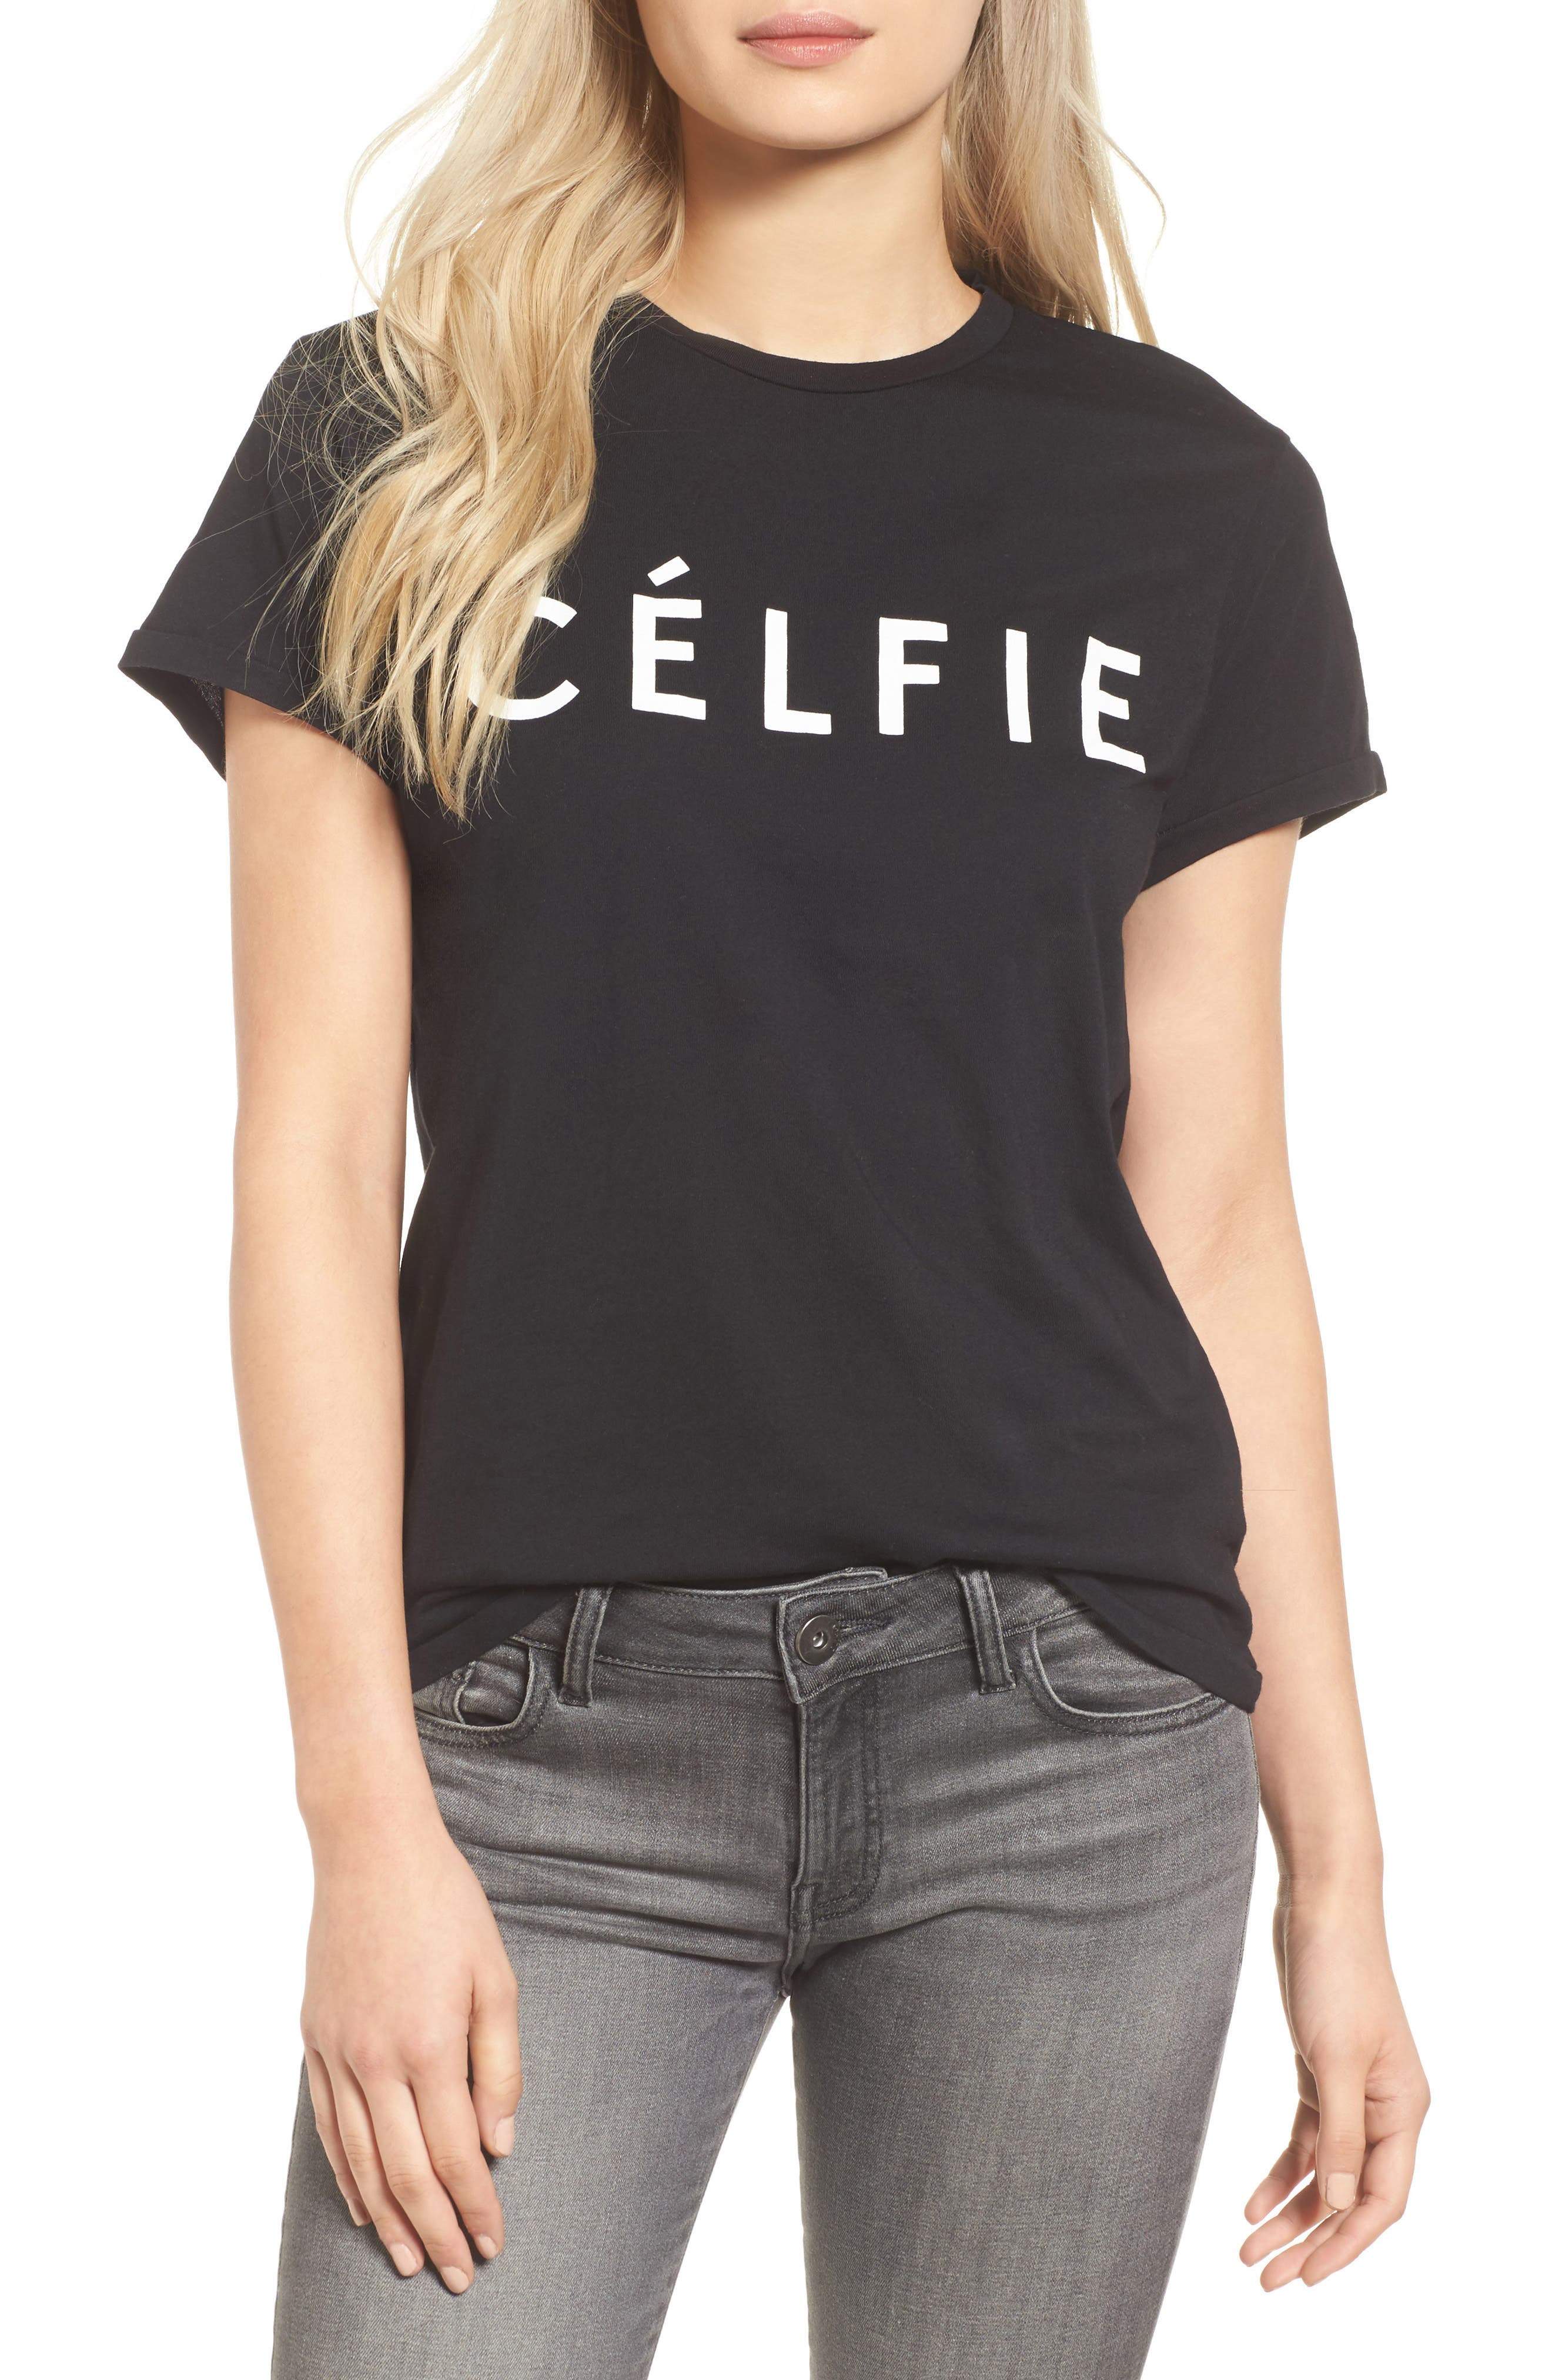 SINCERELY JULES 'Célfie' Graphic Tee, Main, color, 001